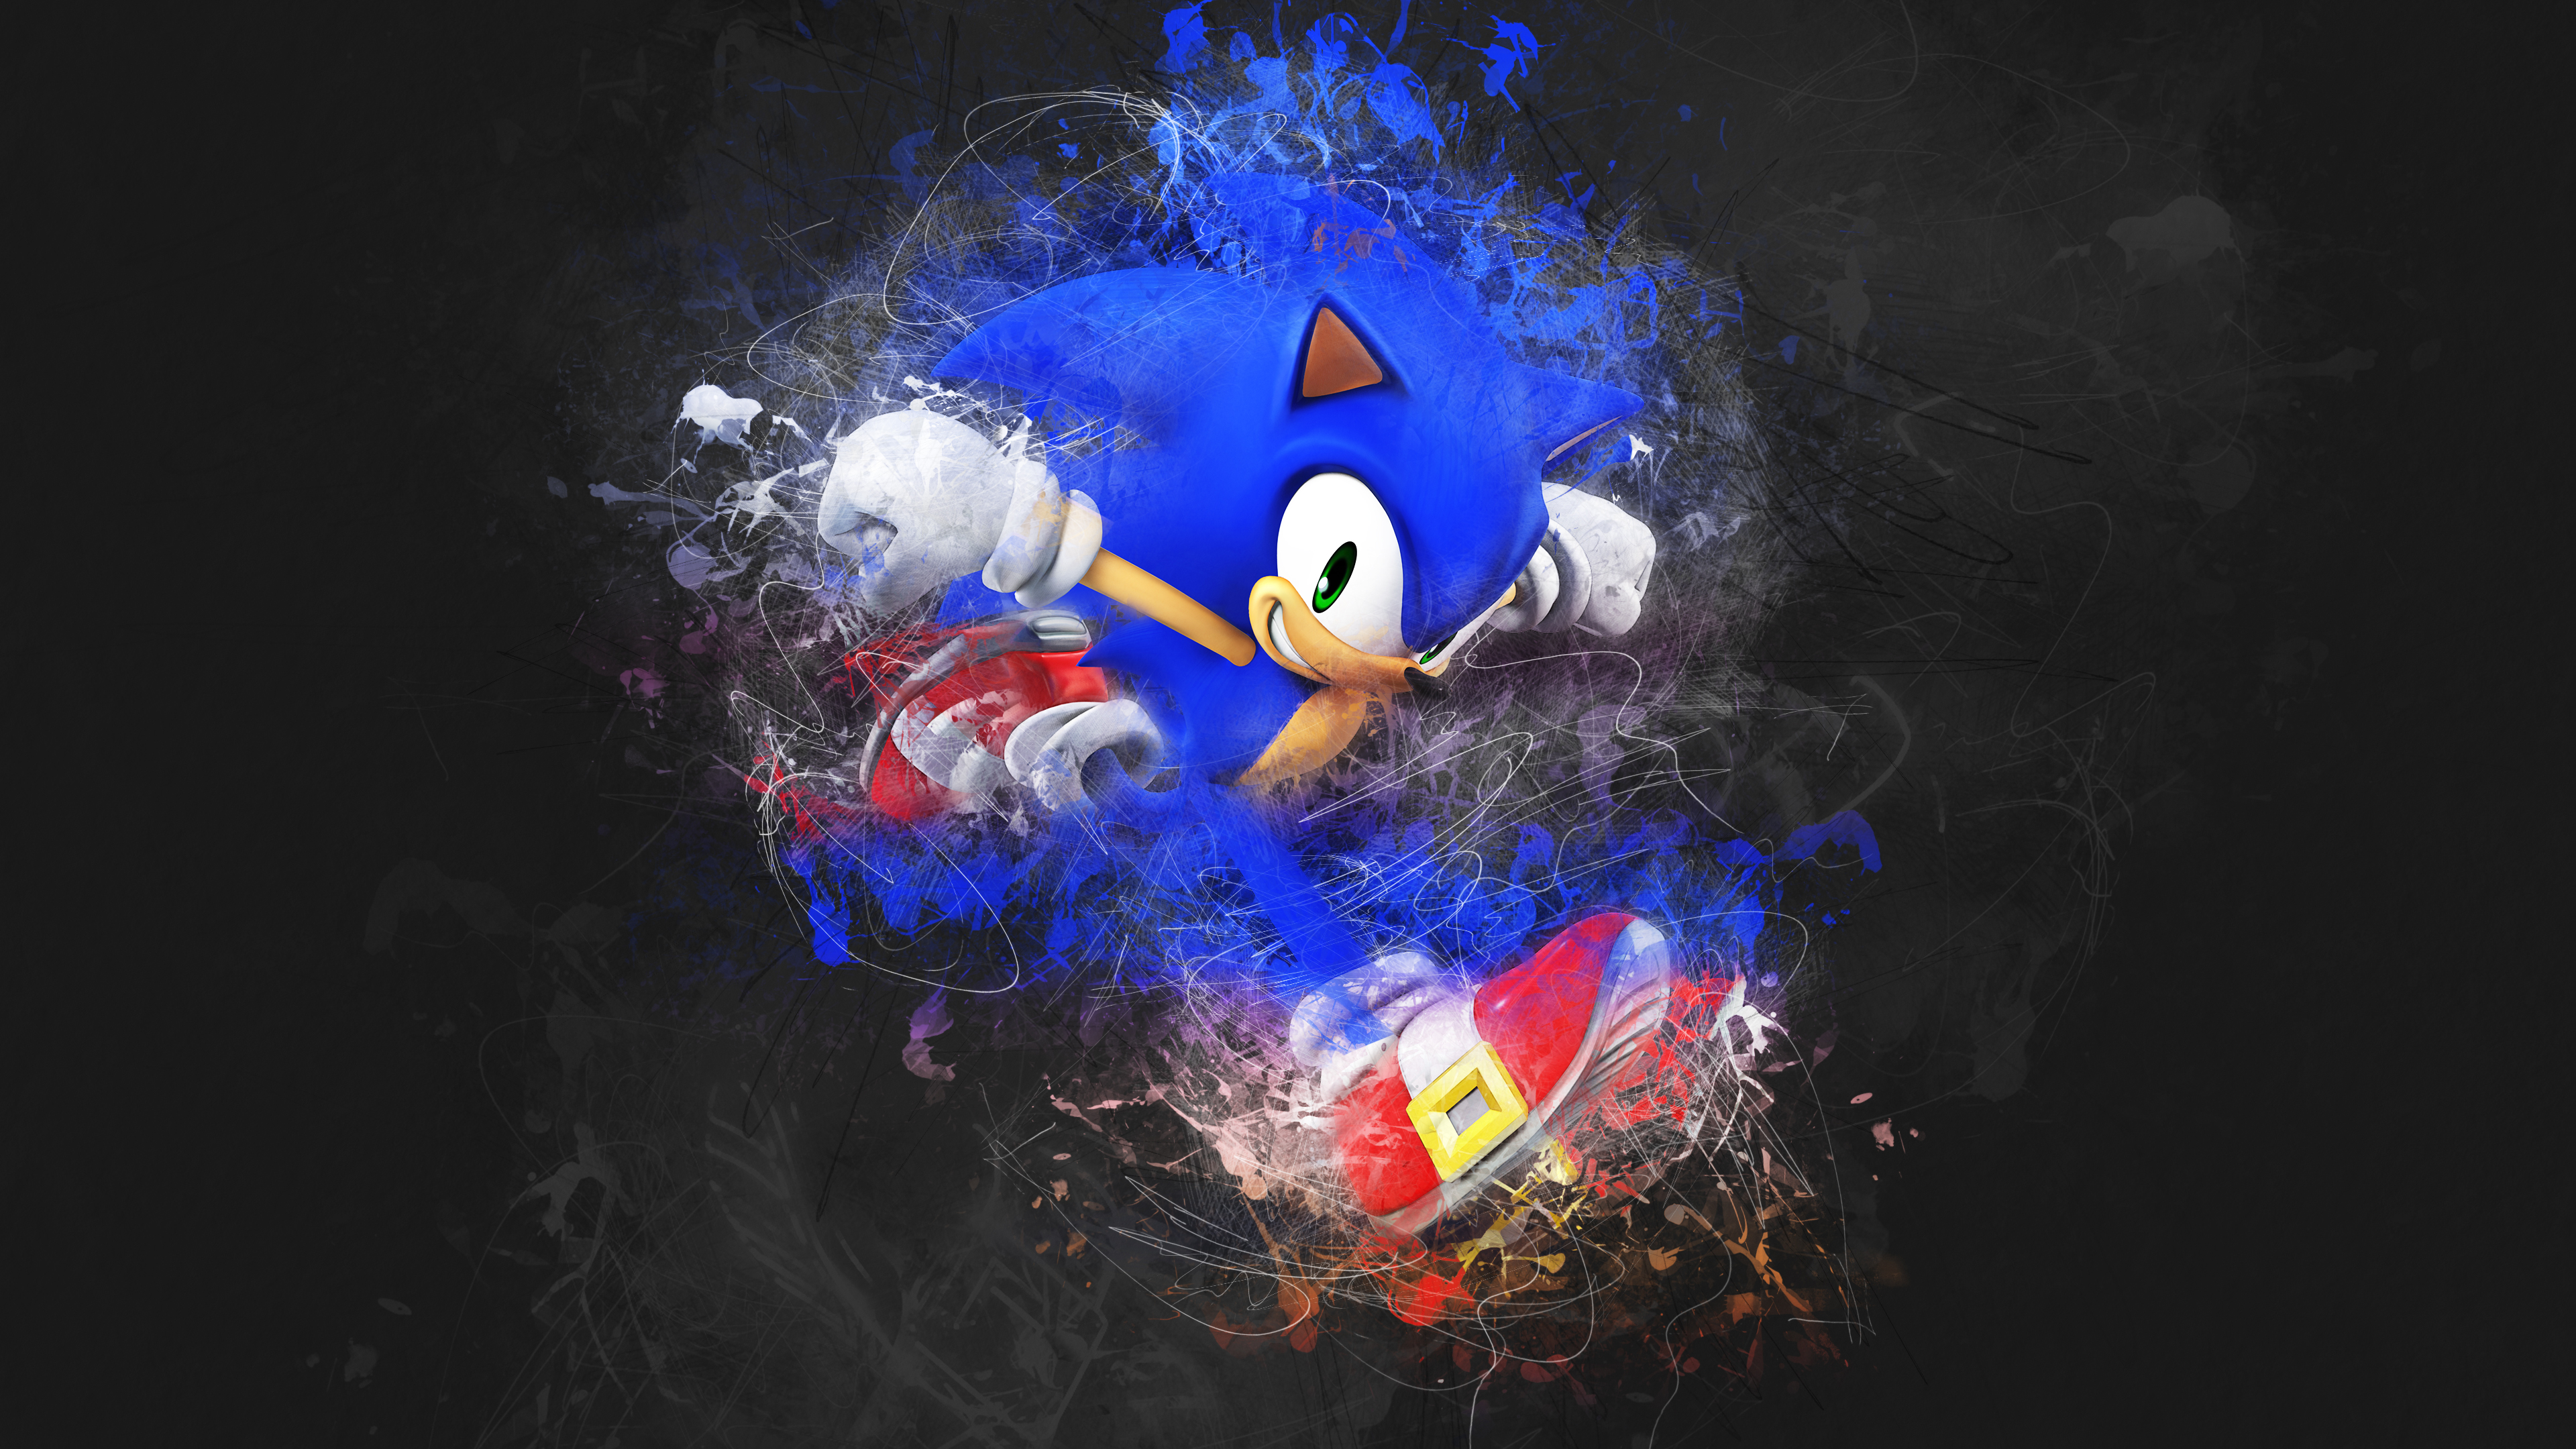 Sonic 4k hd games 4k wallpapers images backgrounds photos and pictures - Background images 4k hd ...